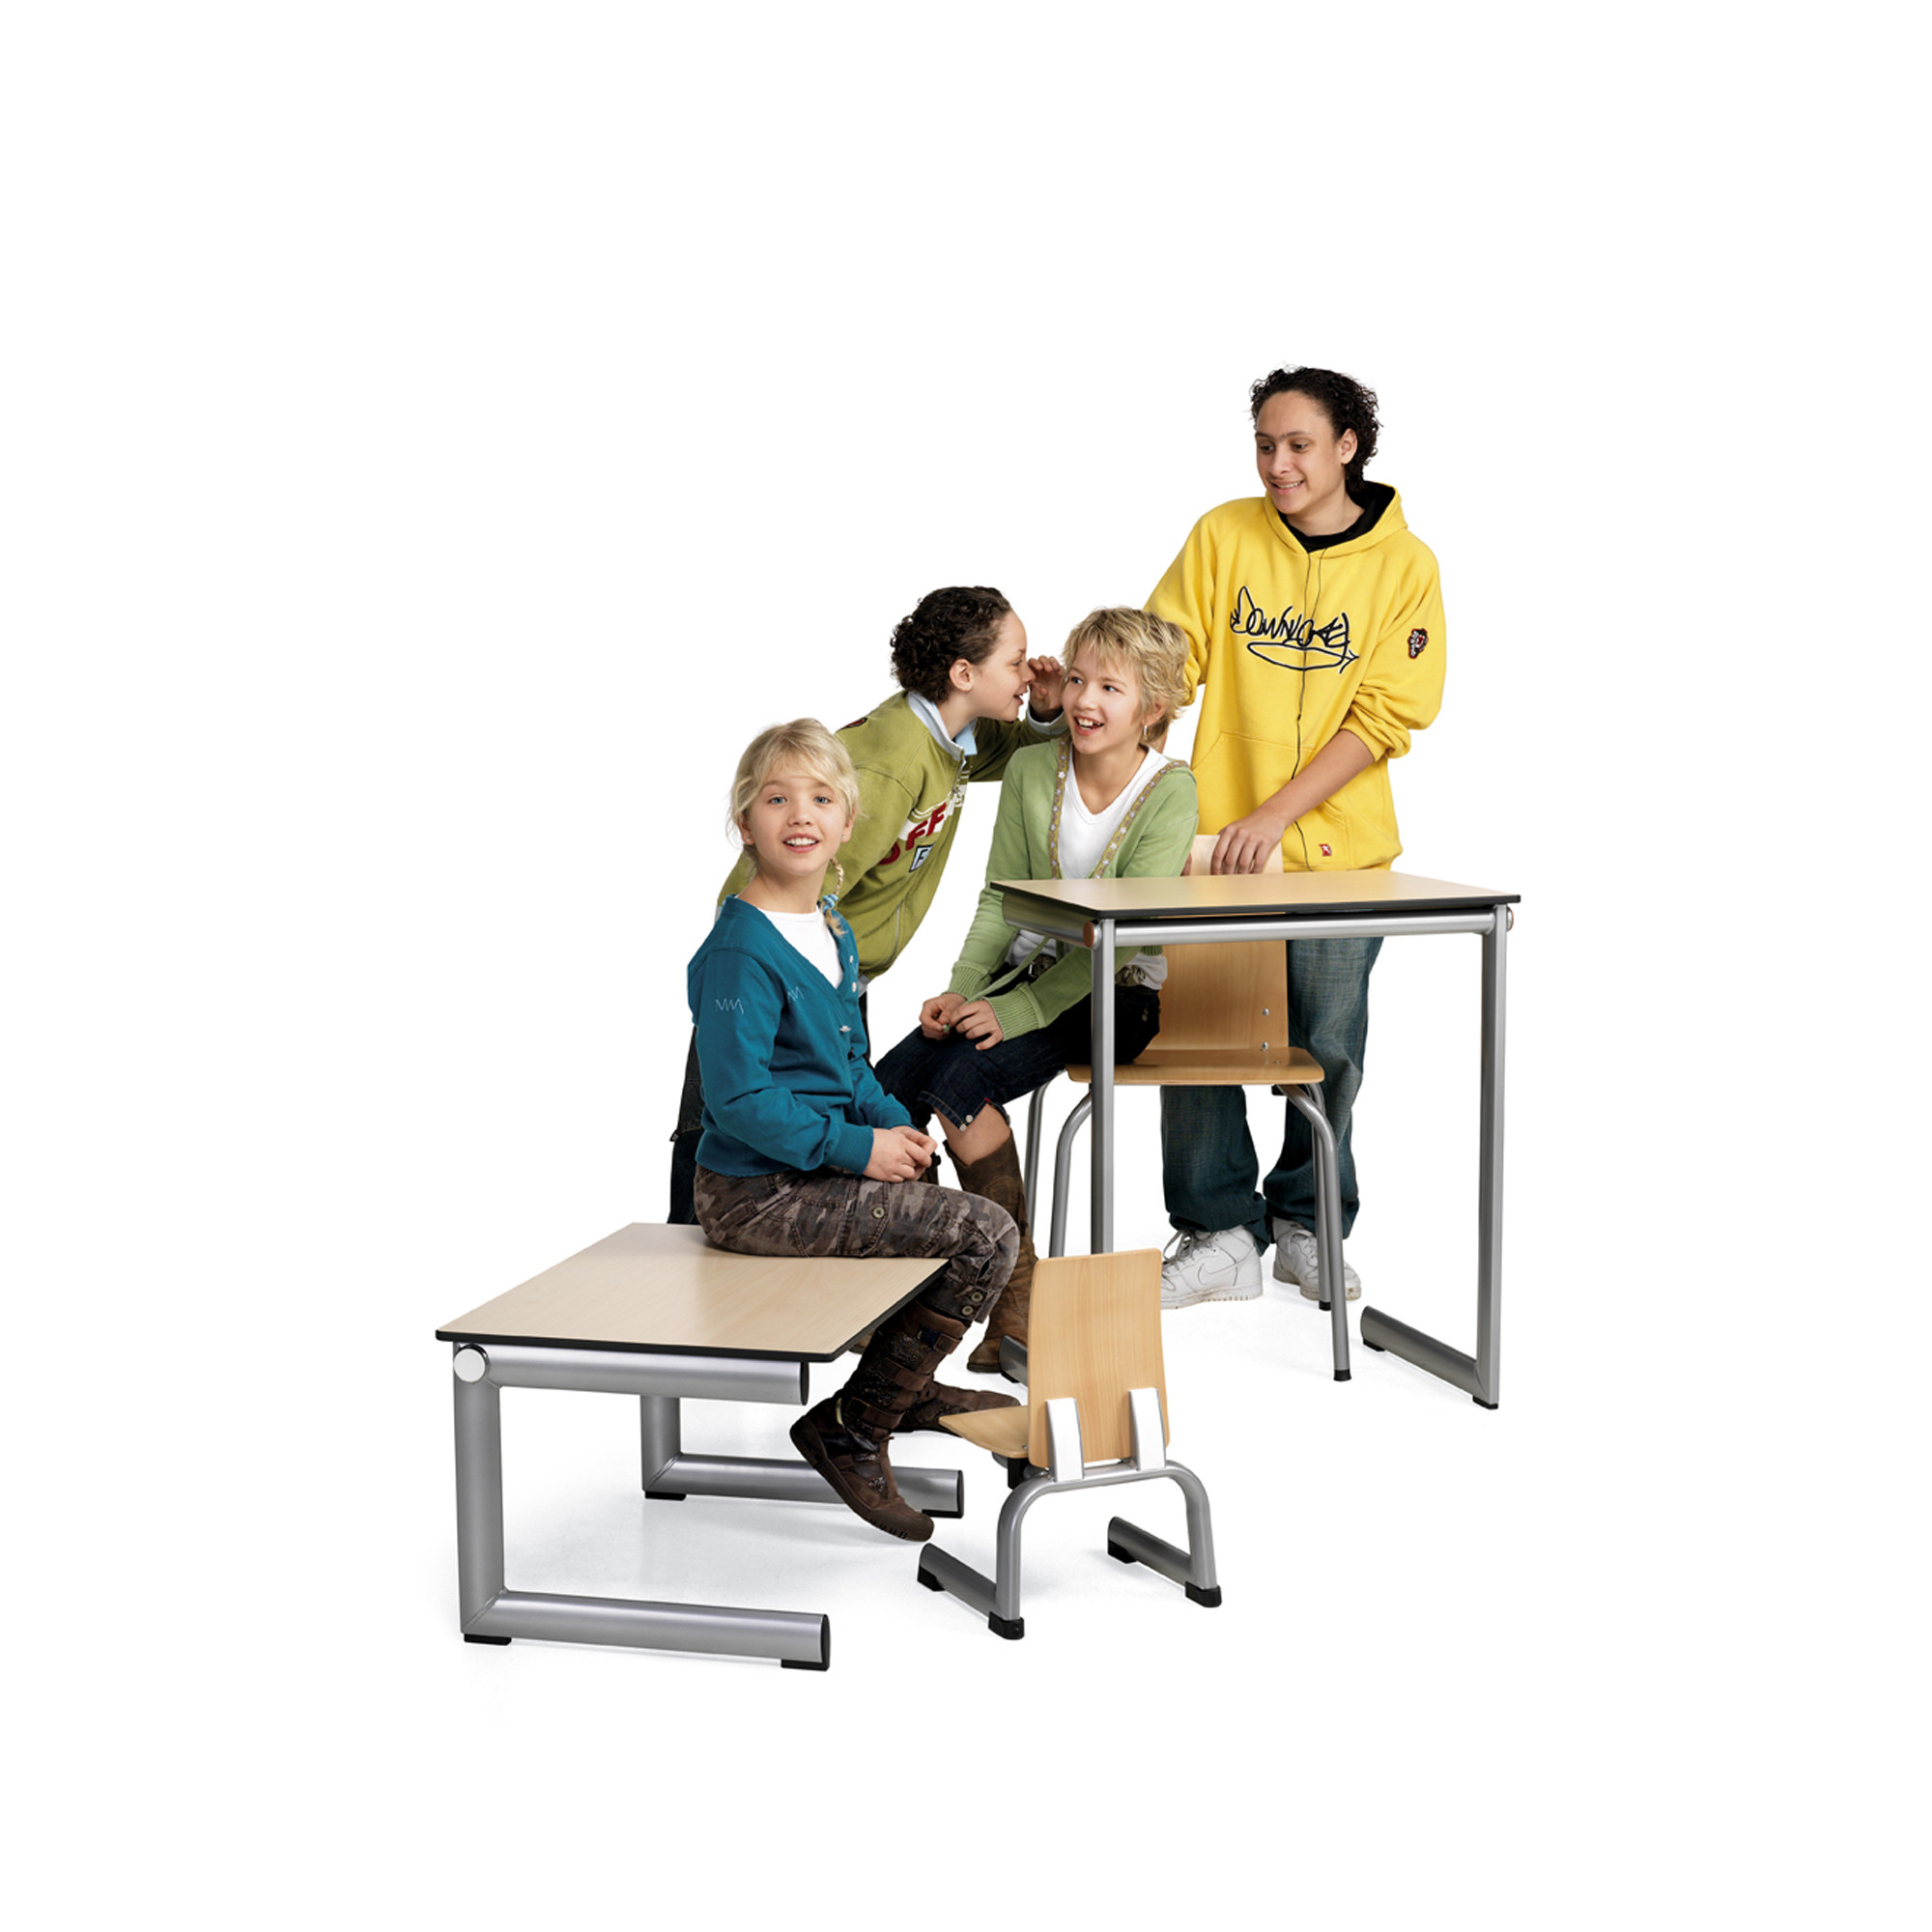 Ahrend 452 Educational Desk